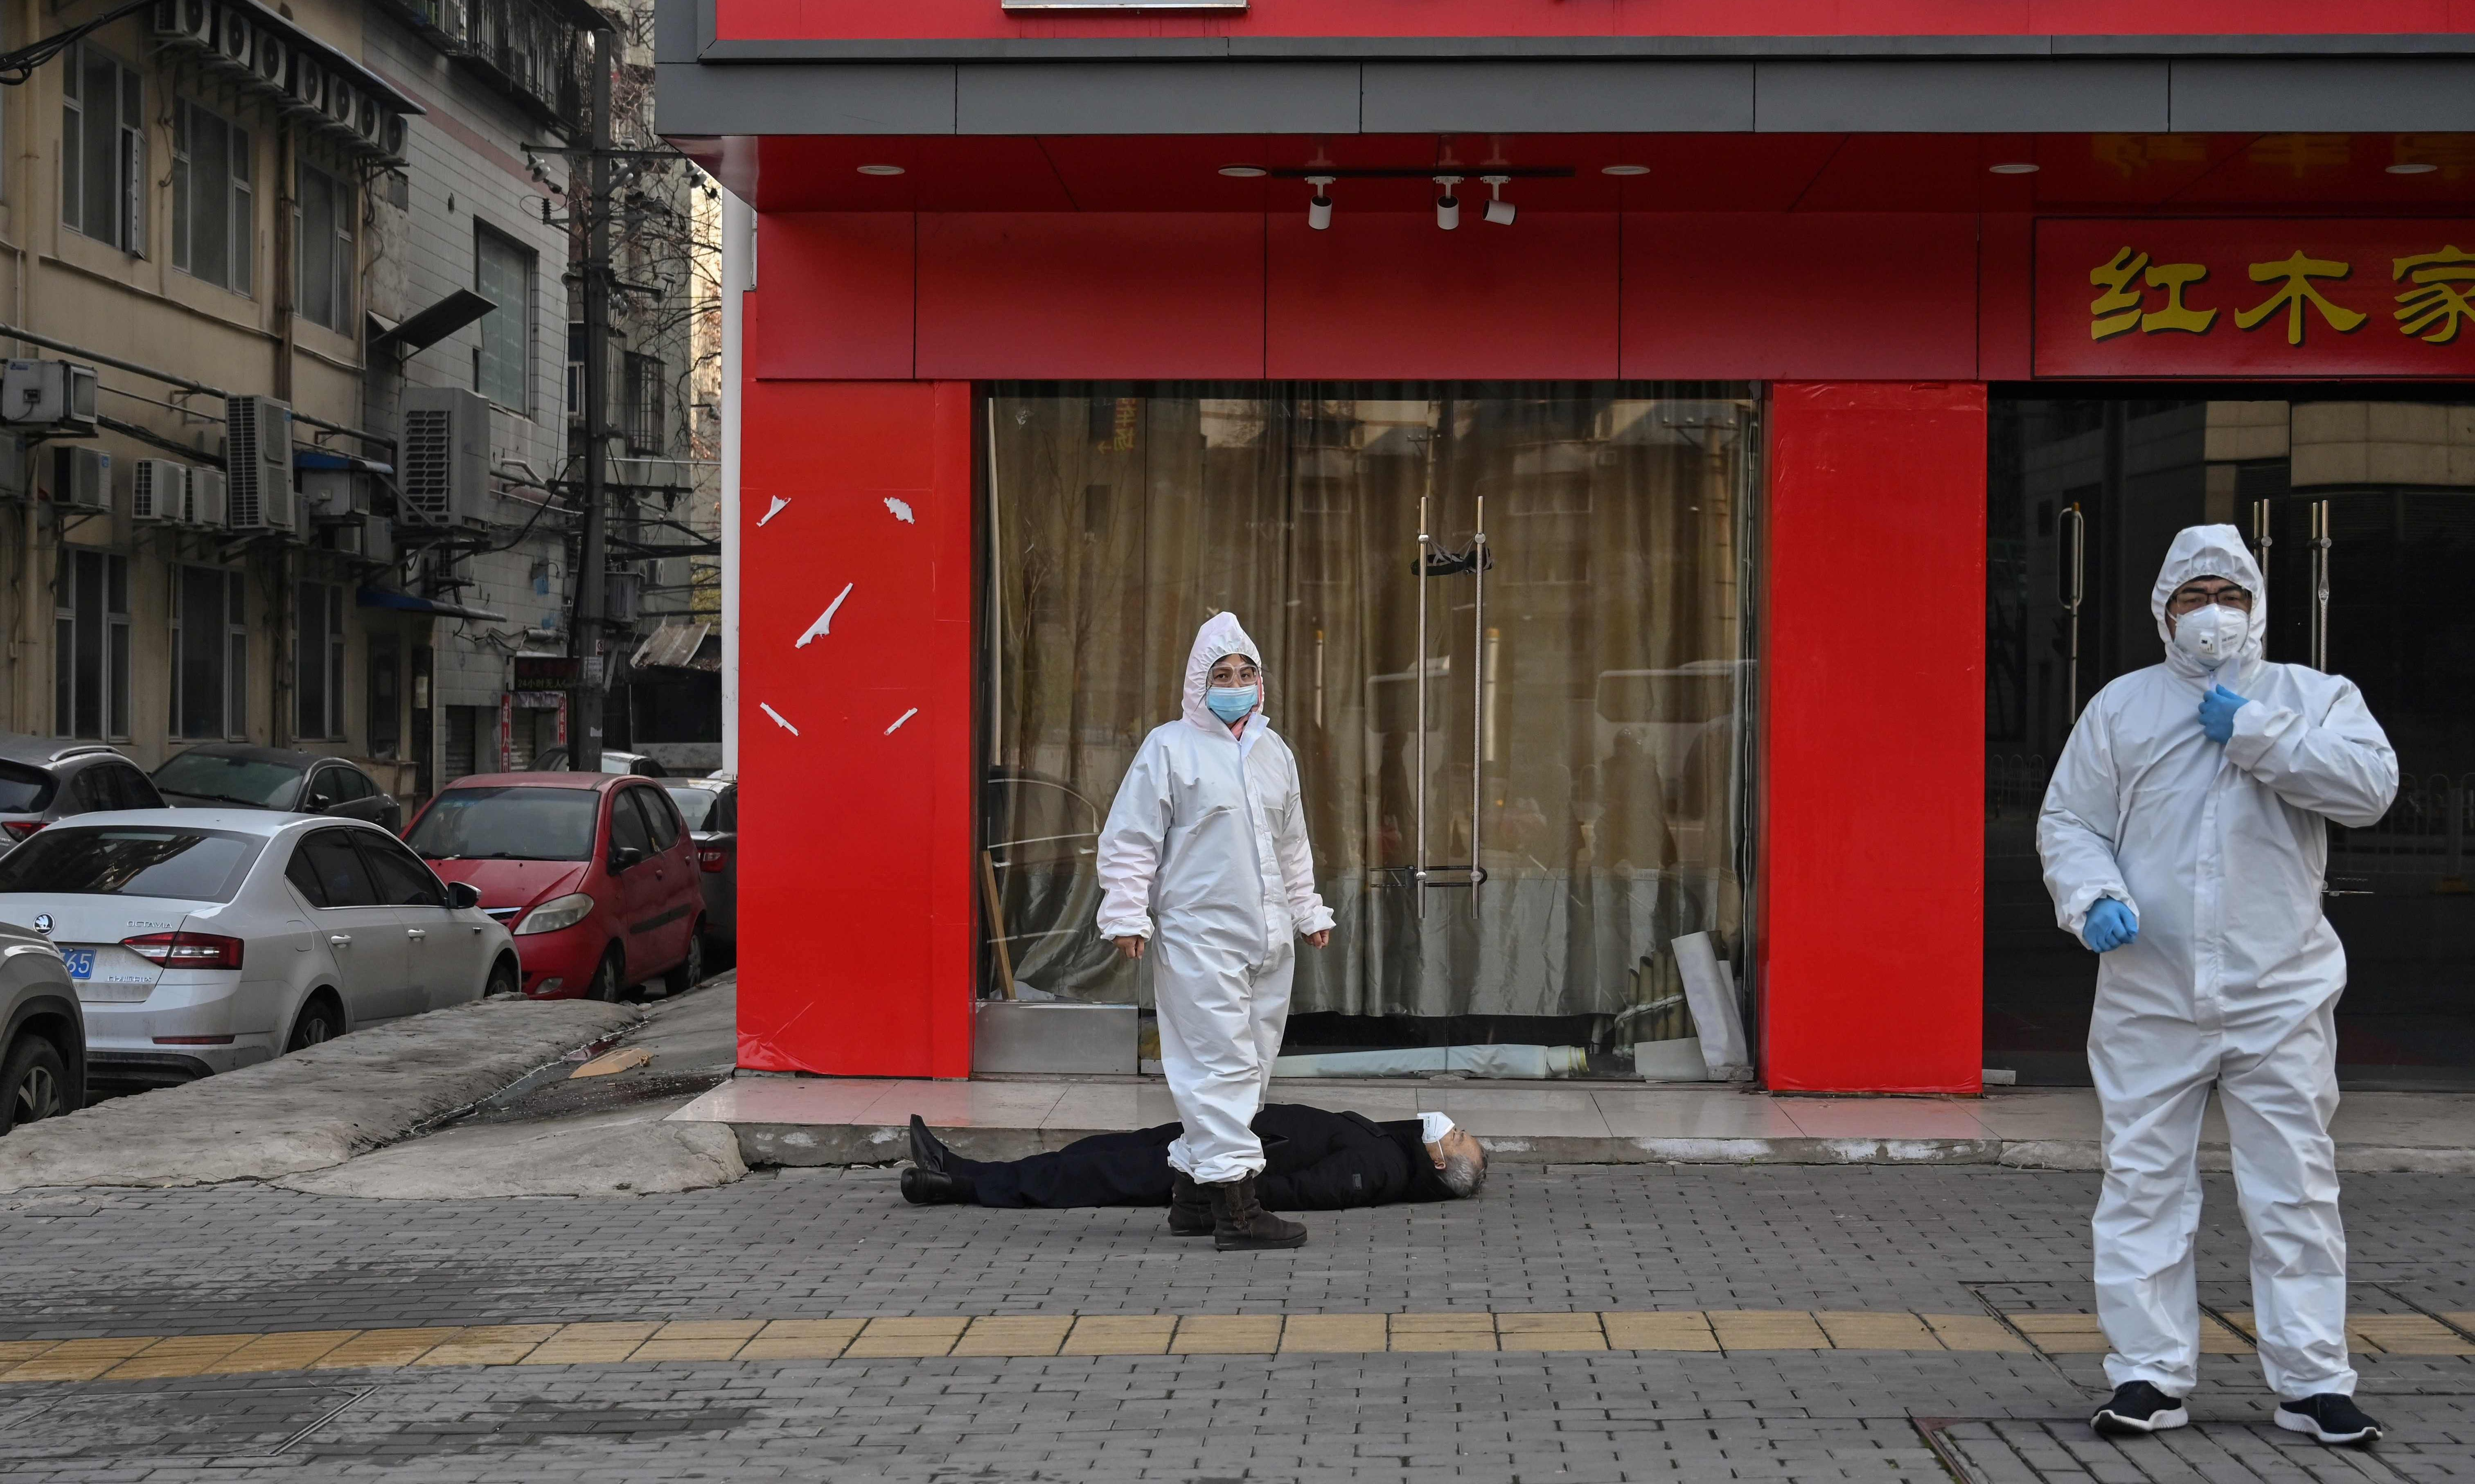 A man lies dead in the street: the image that captures the Wuhan coronavirus crisis